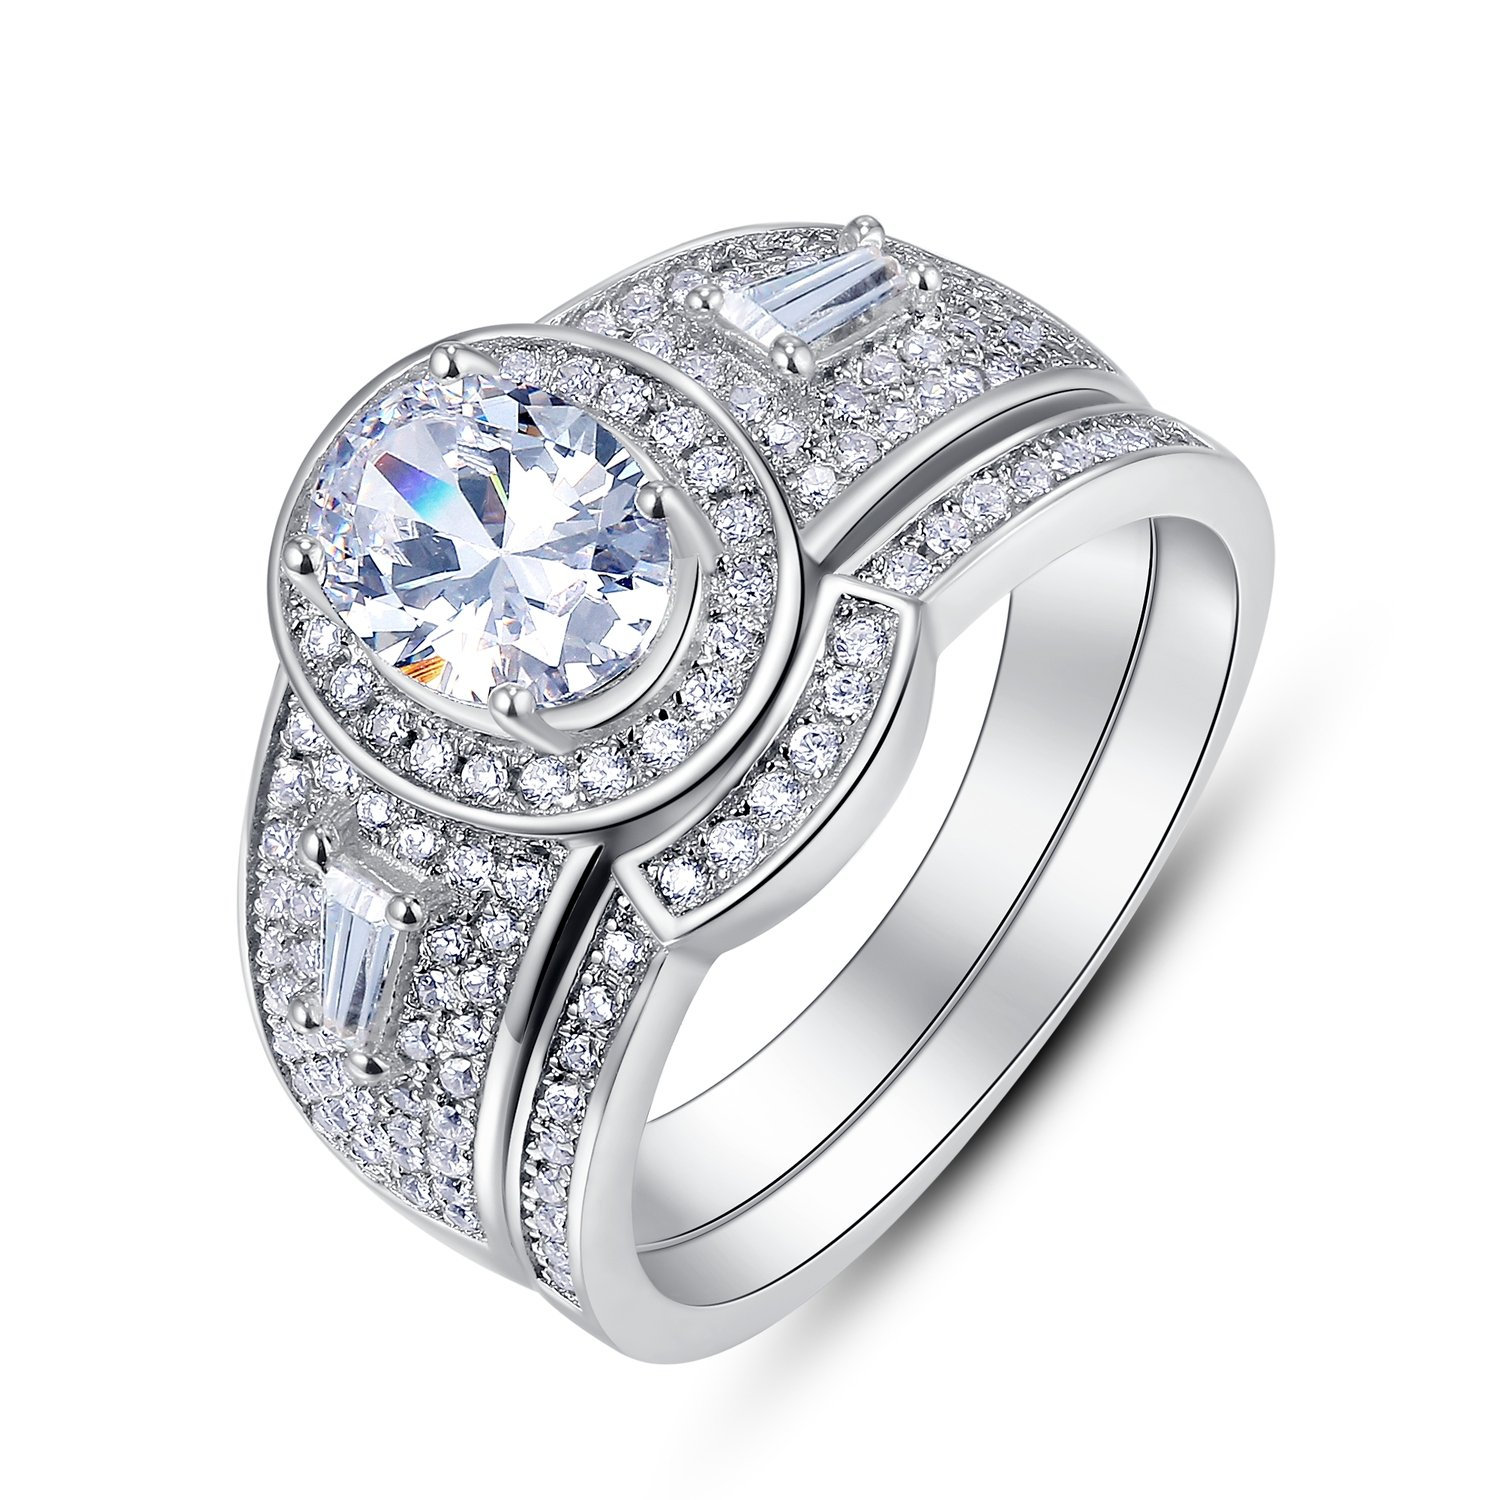 BL Jewelry Sterling Silver 2 Pieces Oval CZ Bridal Engagement Wedding Halo Ring Set